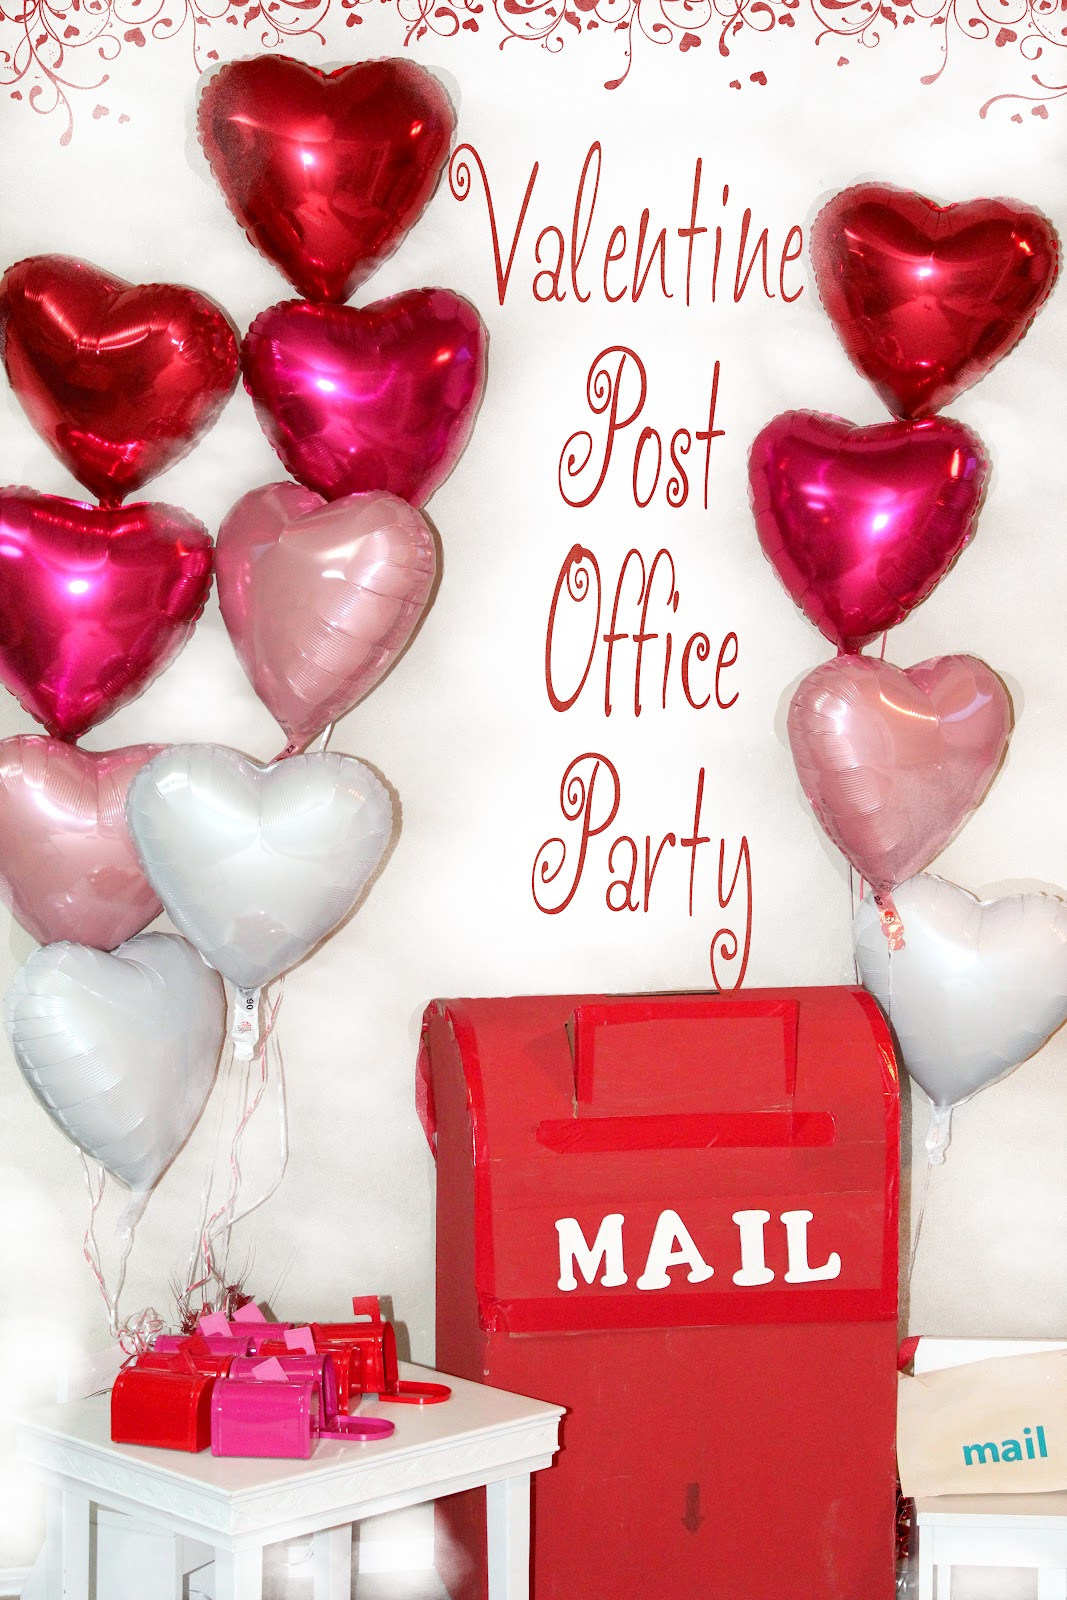 Valentines decor ideas for office